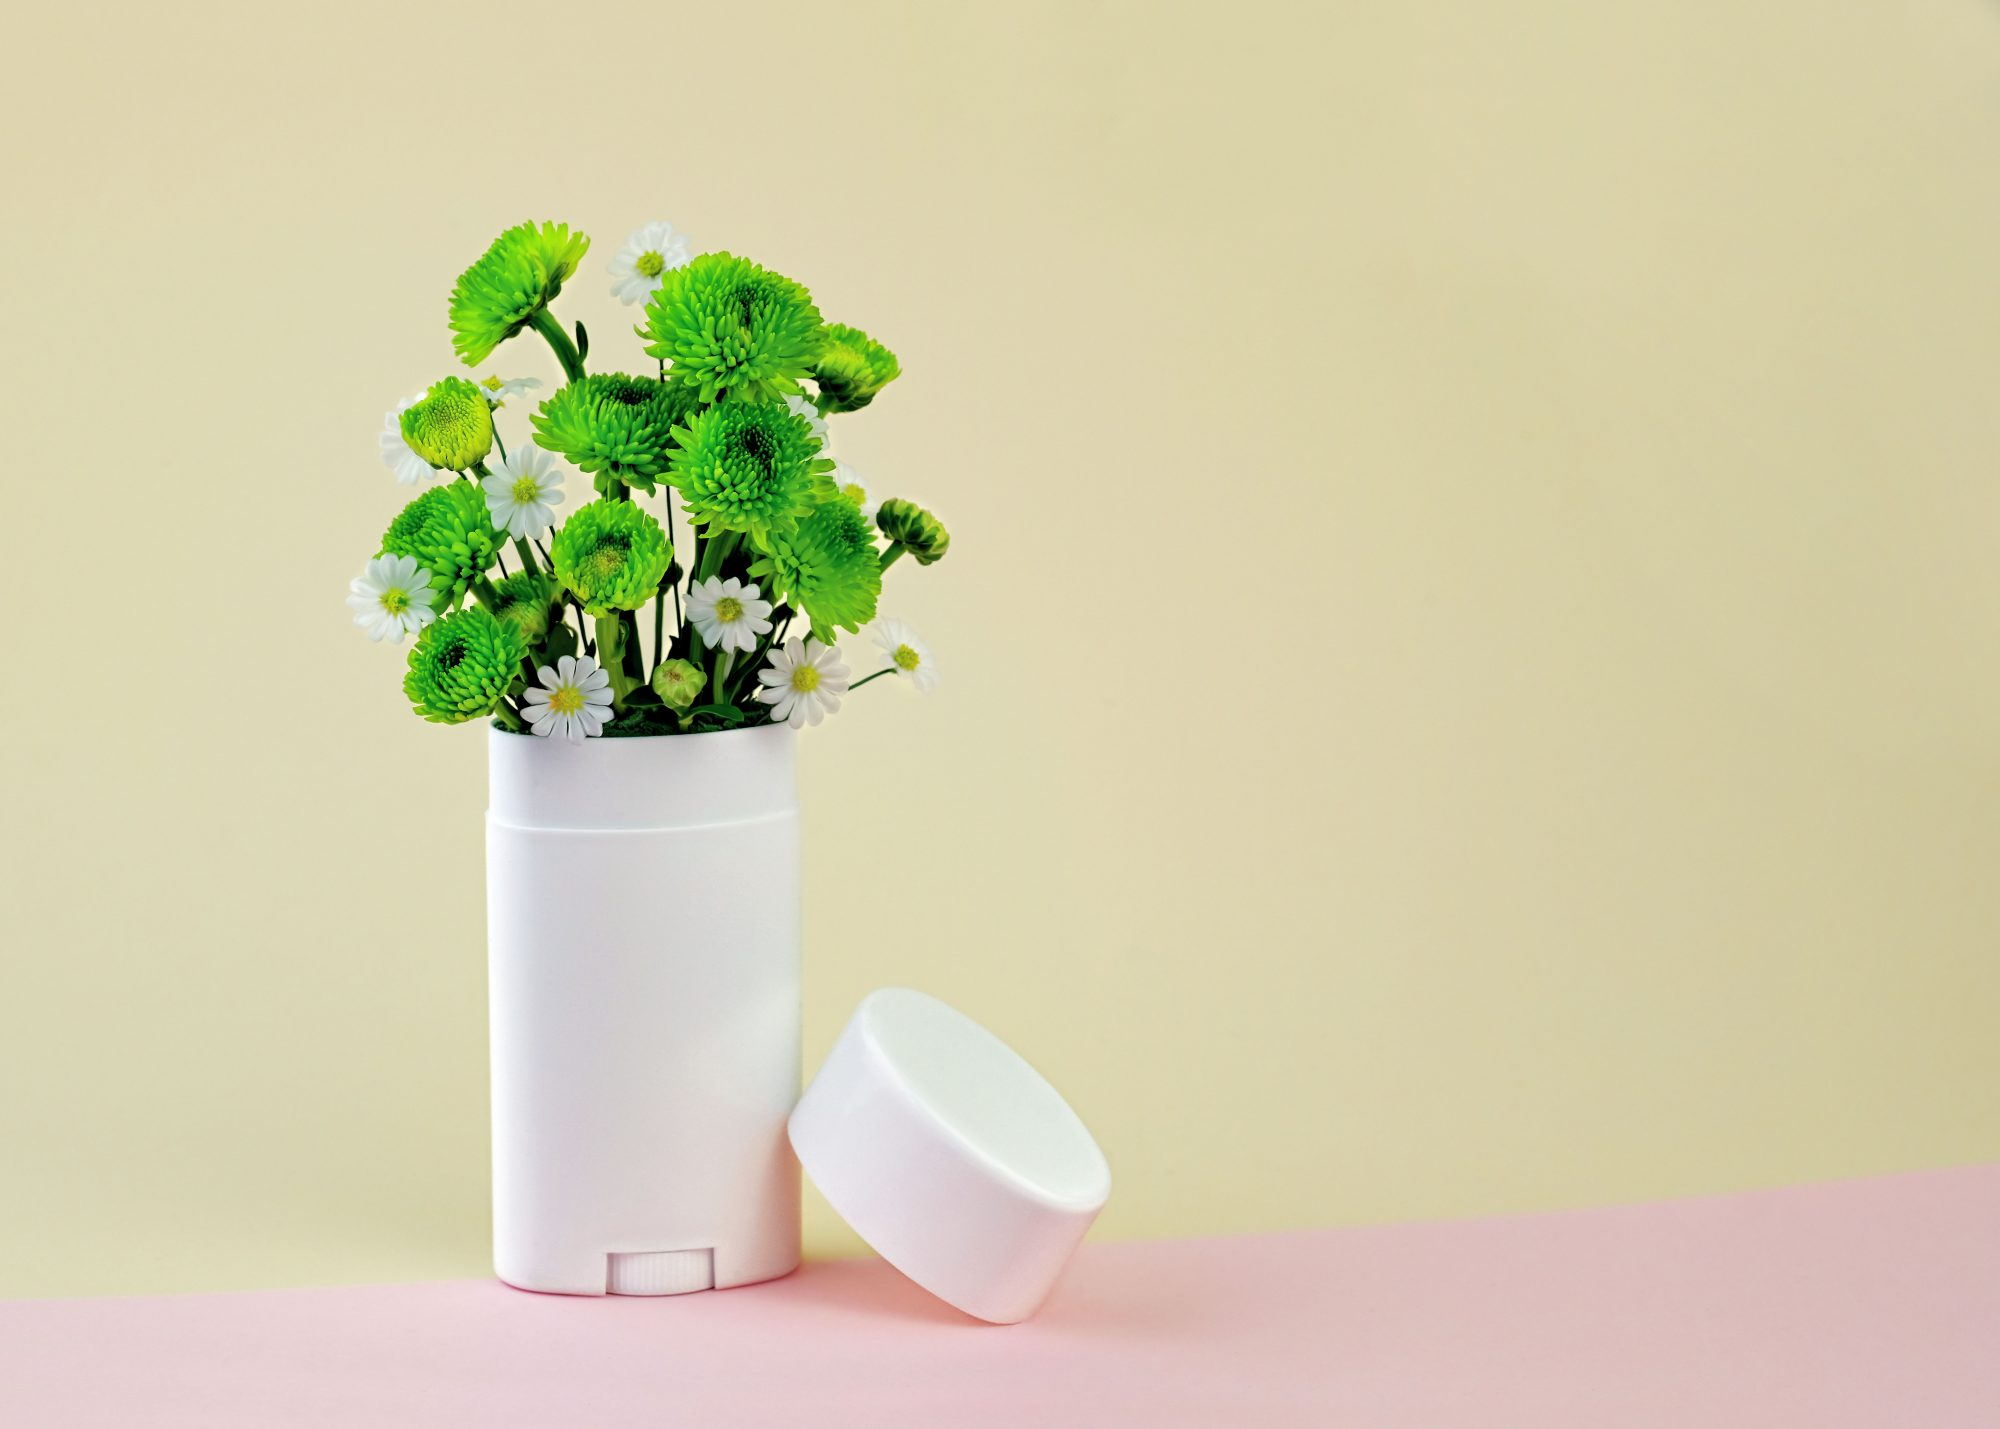 Deodorant Bottle with Flowers